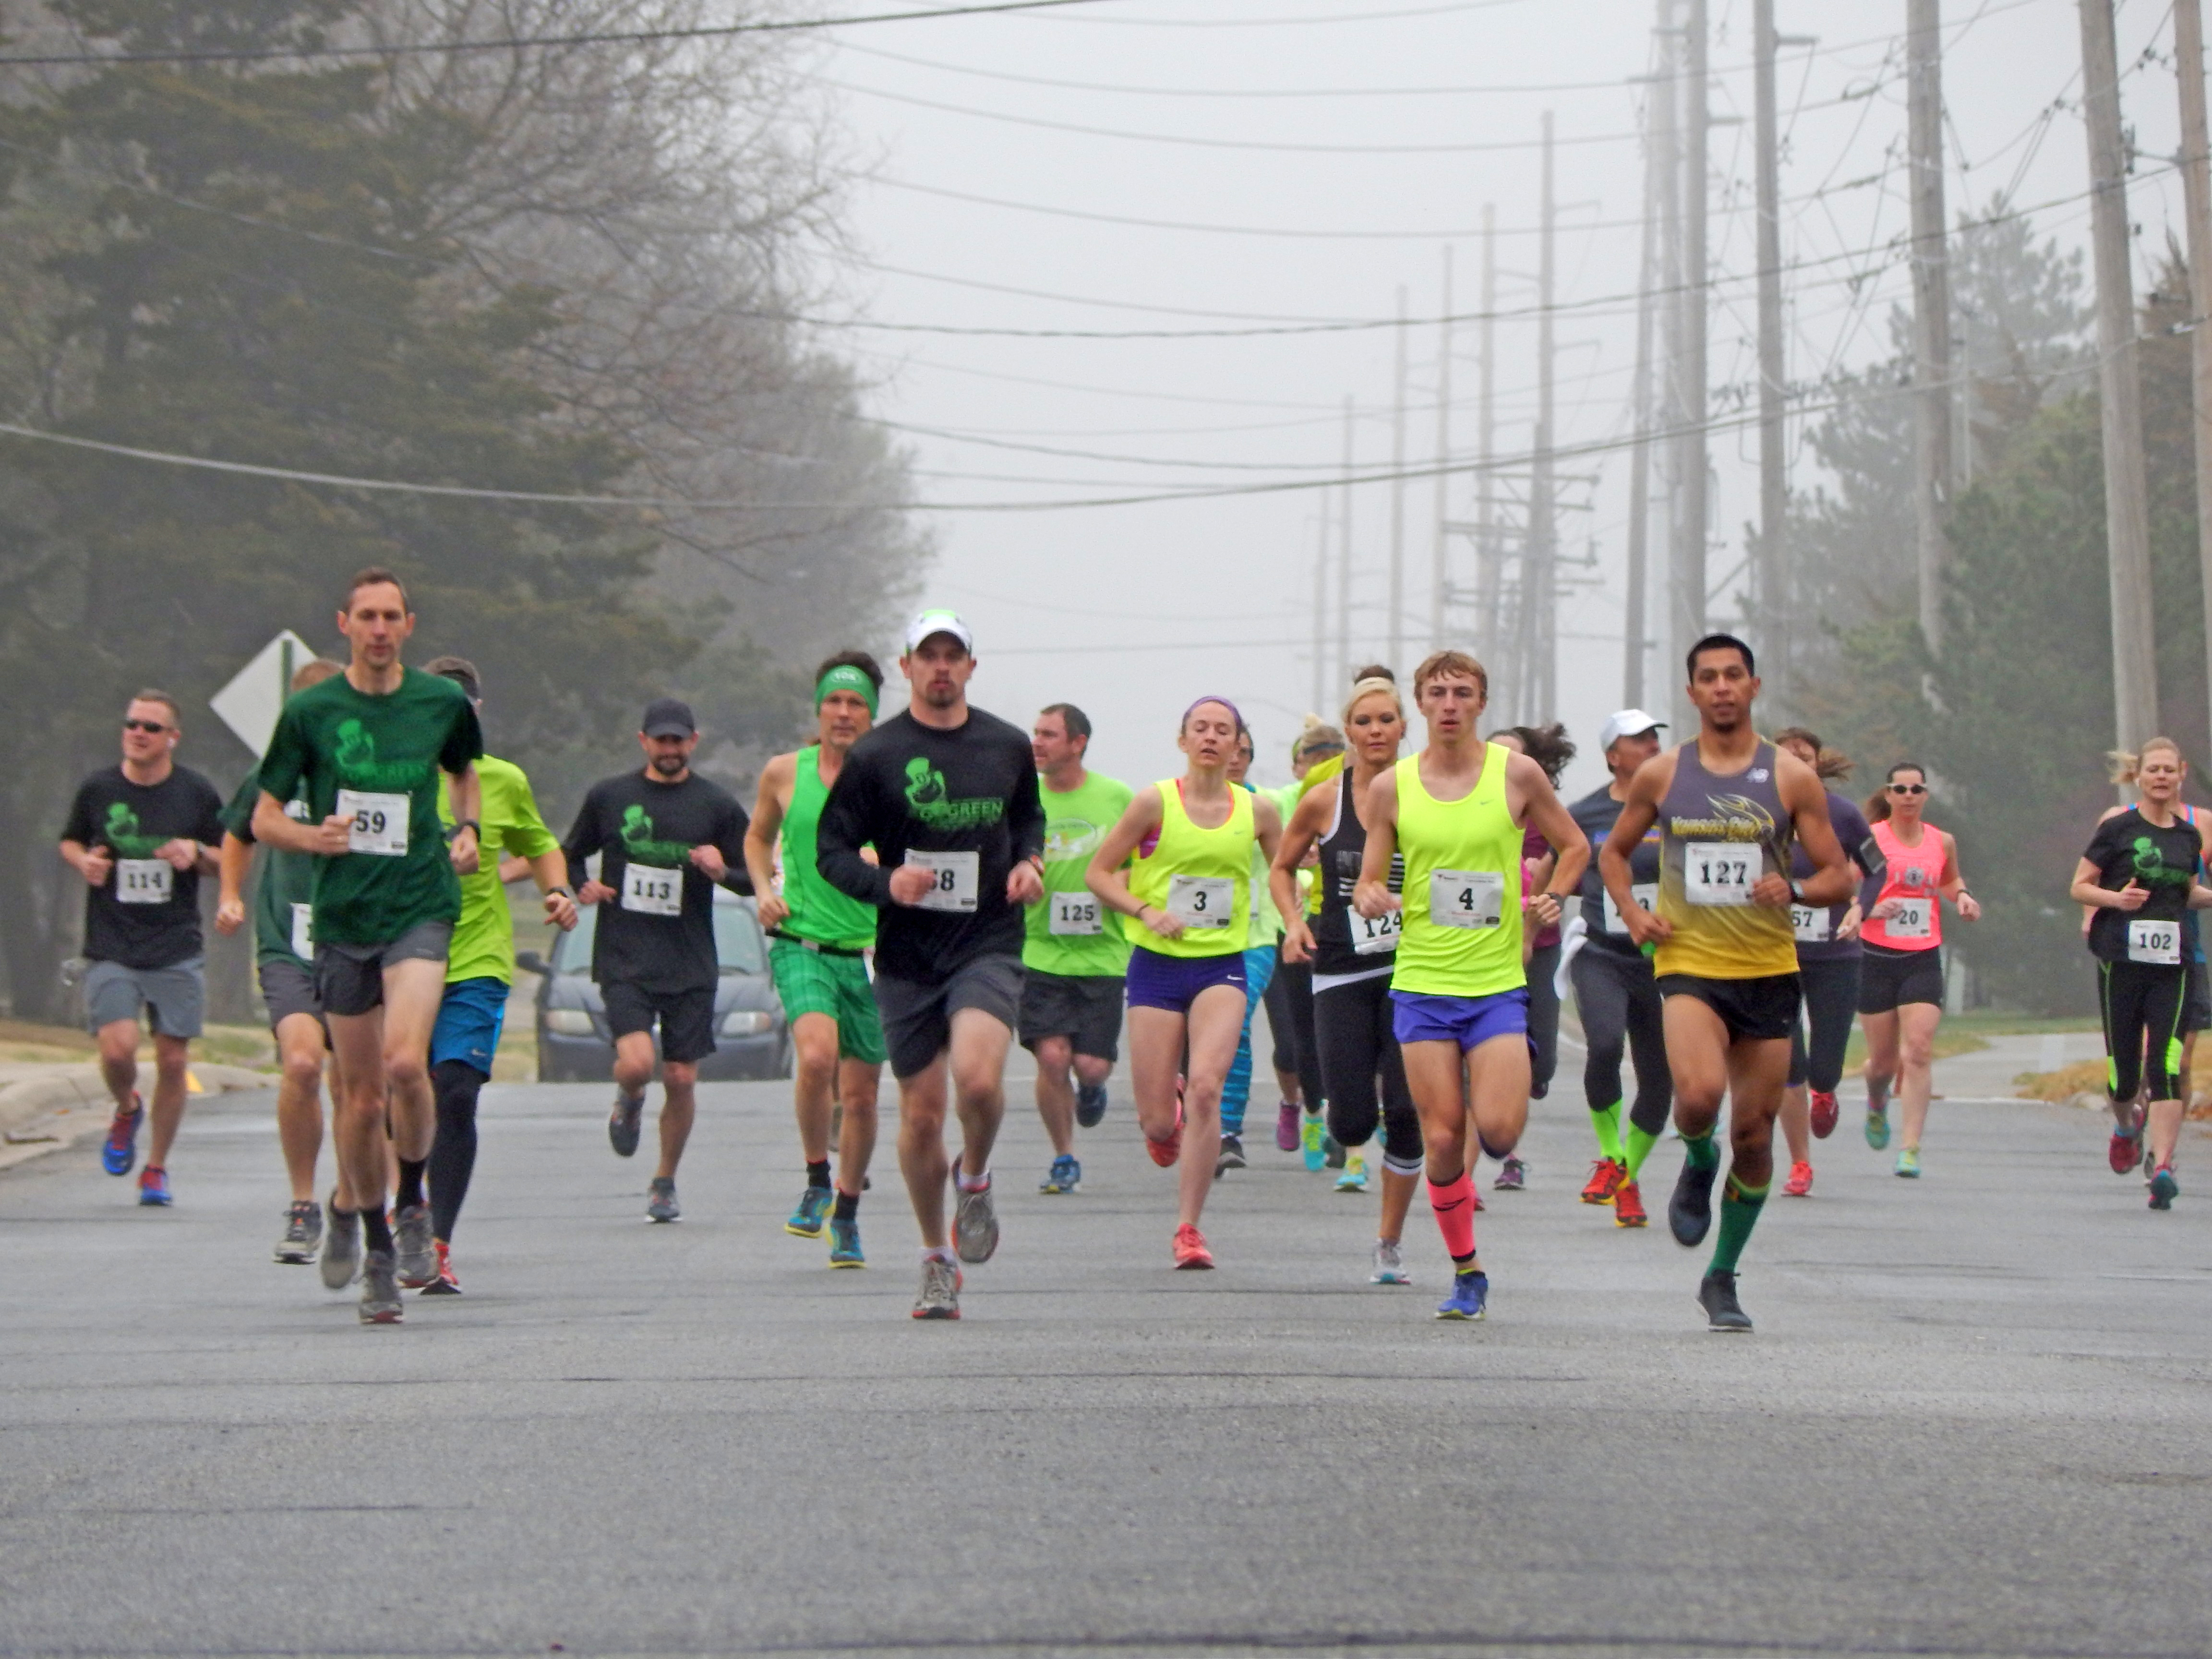 Leprechaun Run 2018: 2 Mile Fun Run/Walk & 10K Race